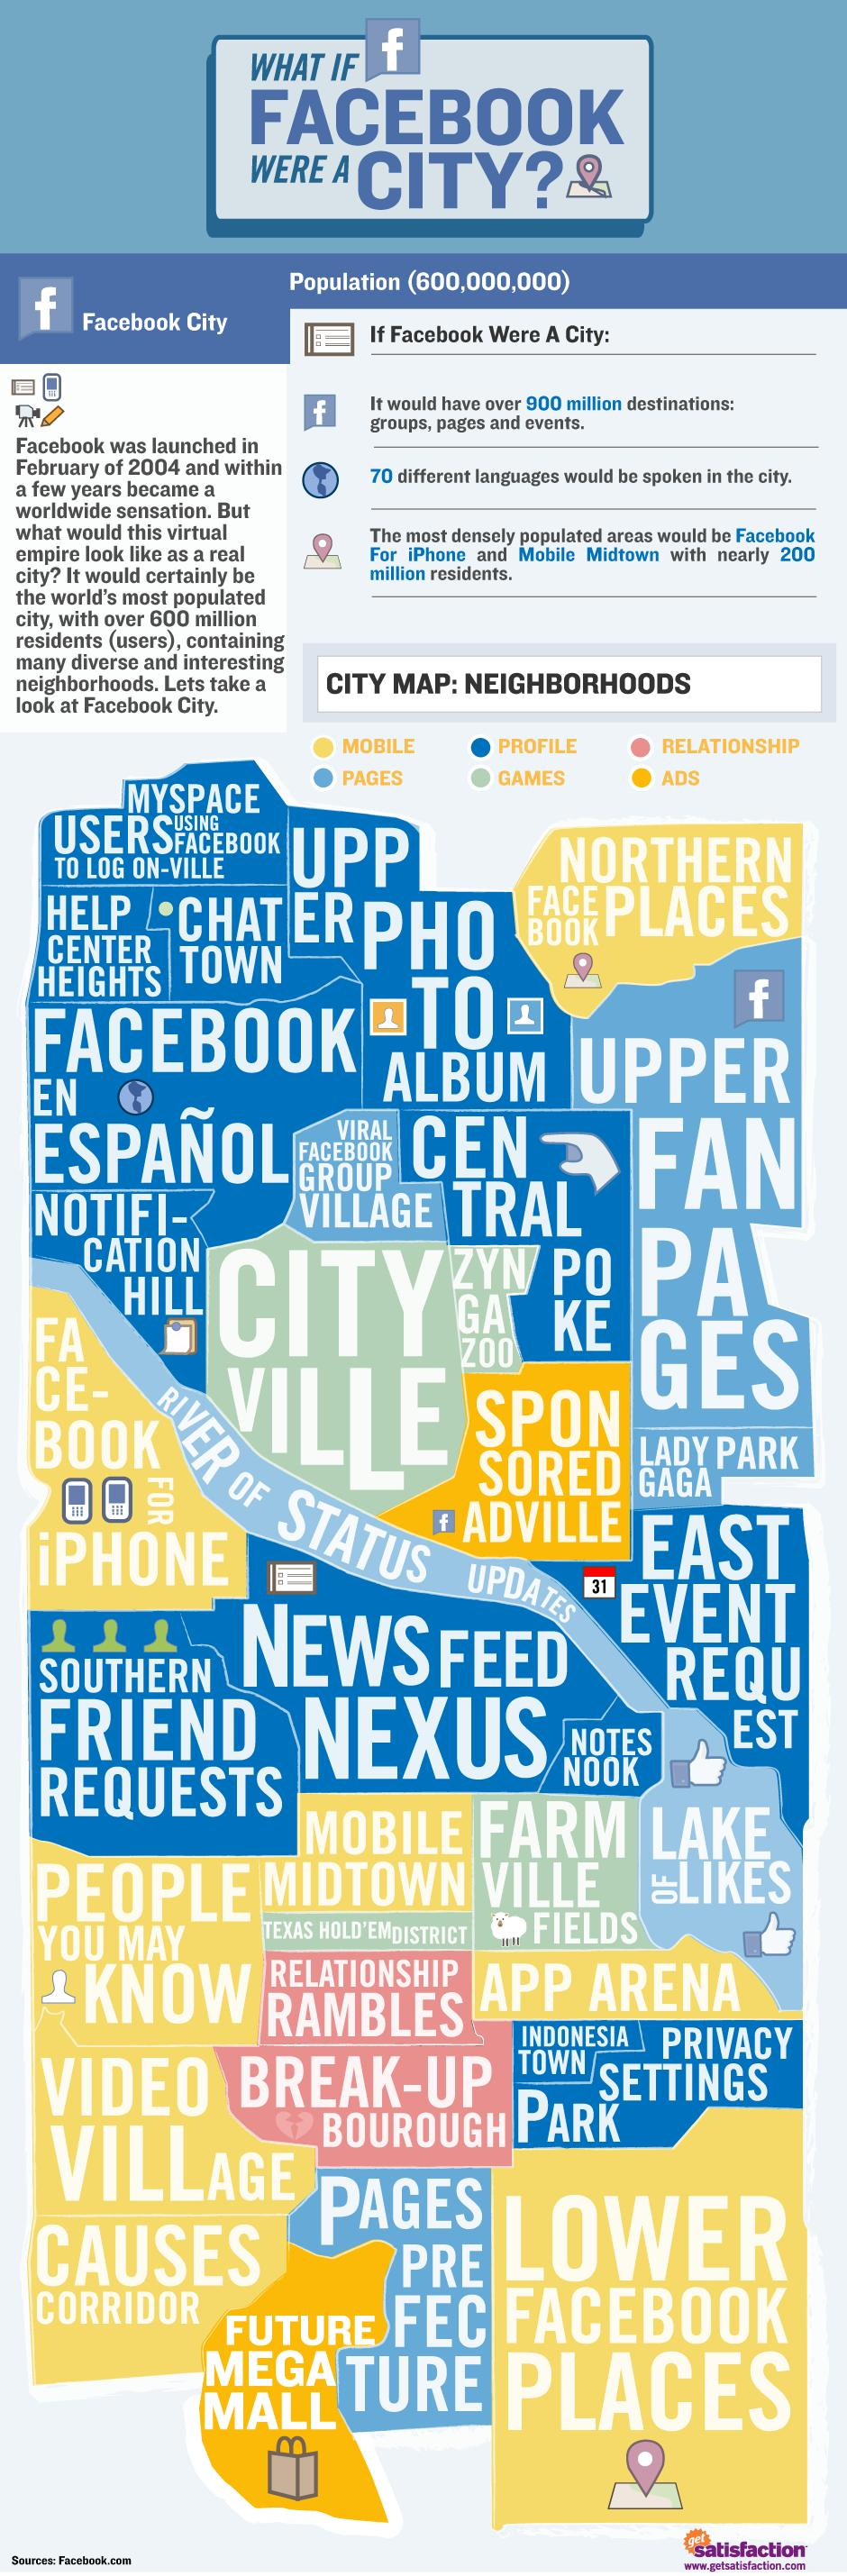 noticias redes sociales Facebook City